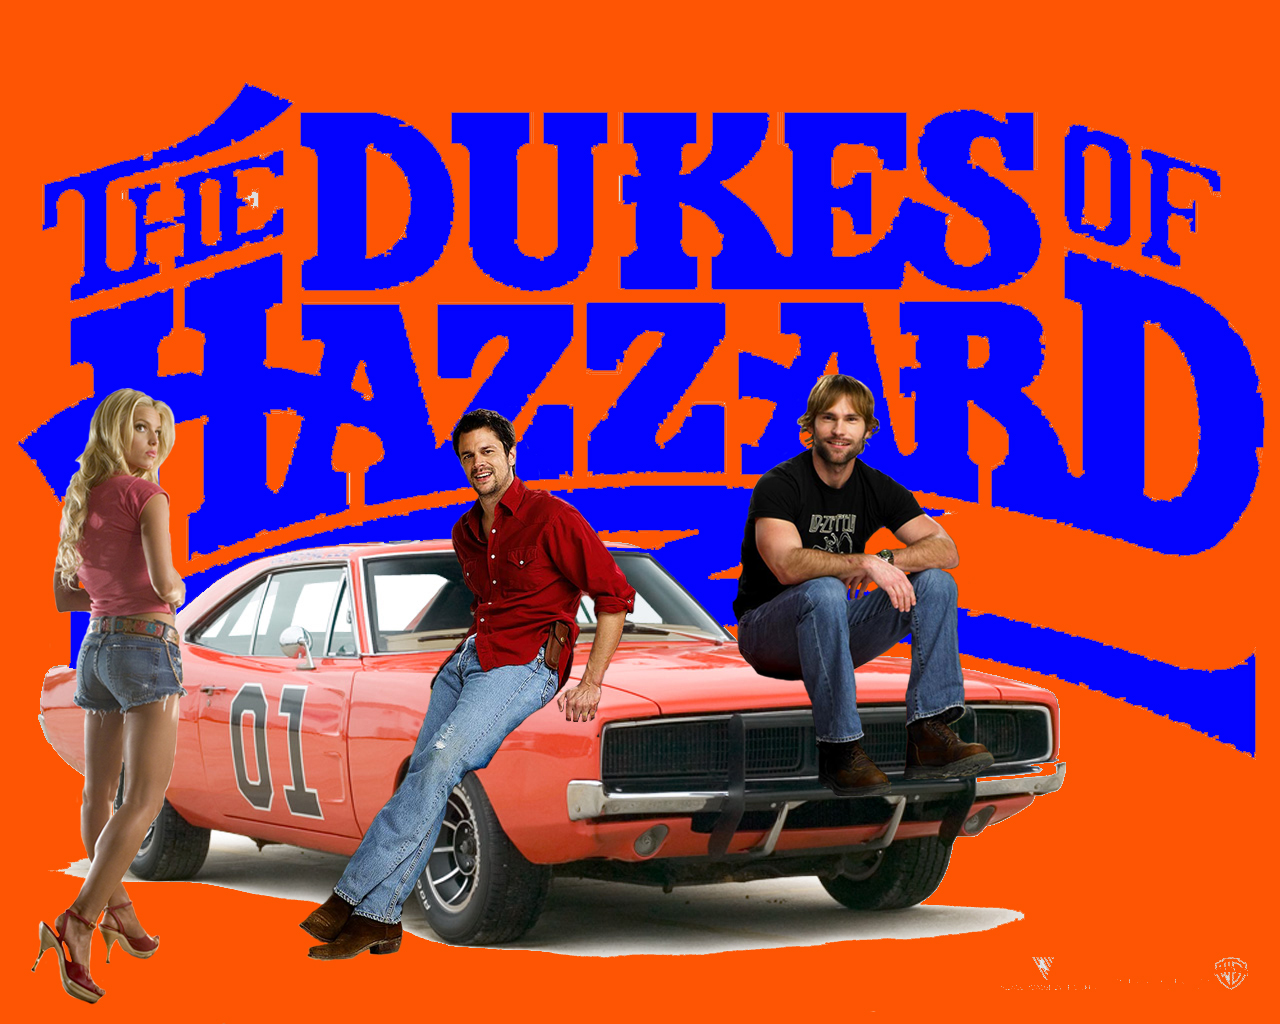 the dukes of hazzard by brcohen on deviantart